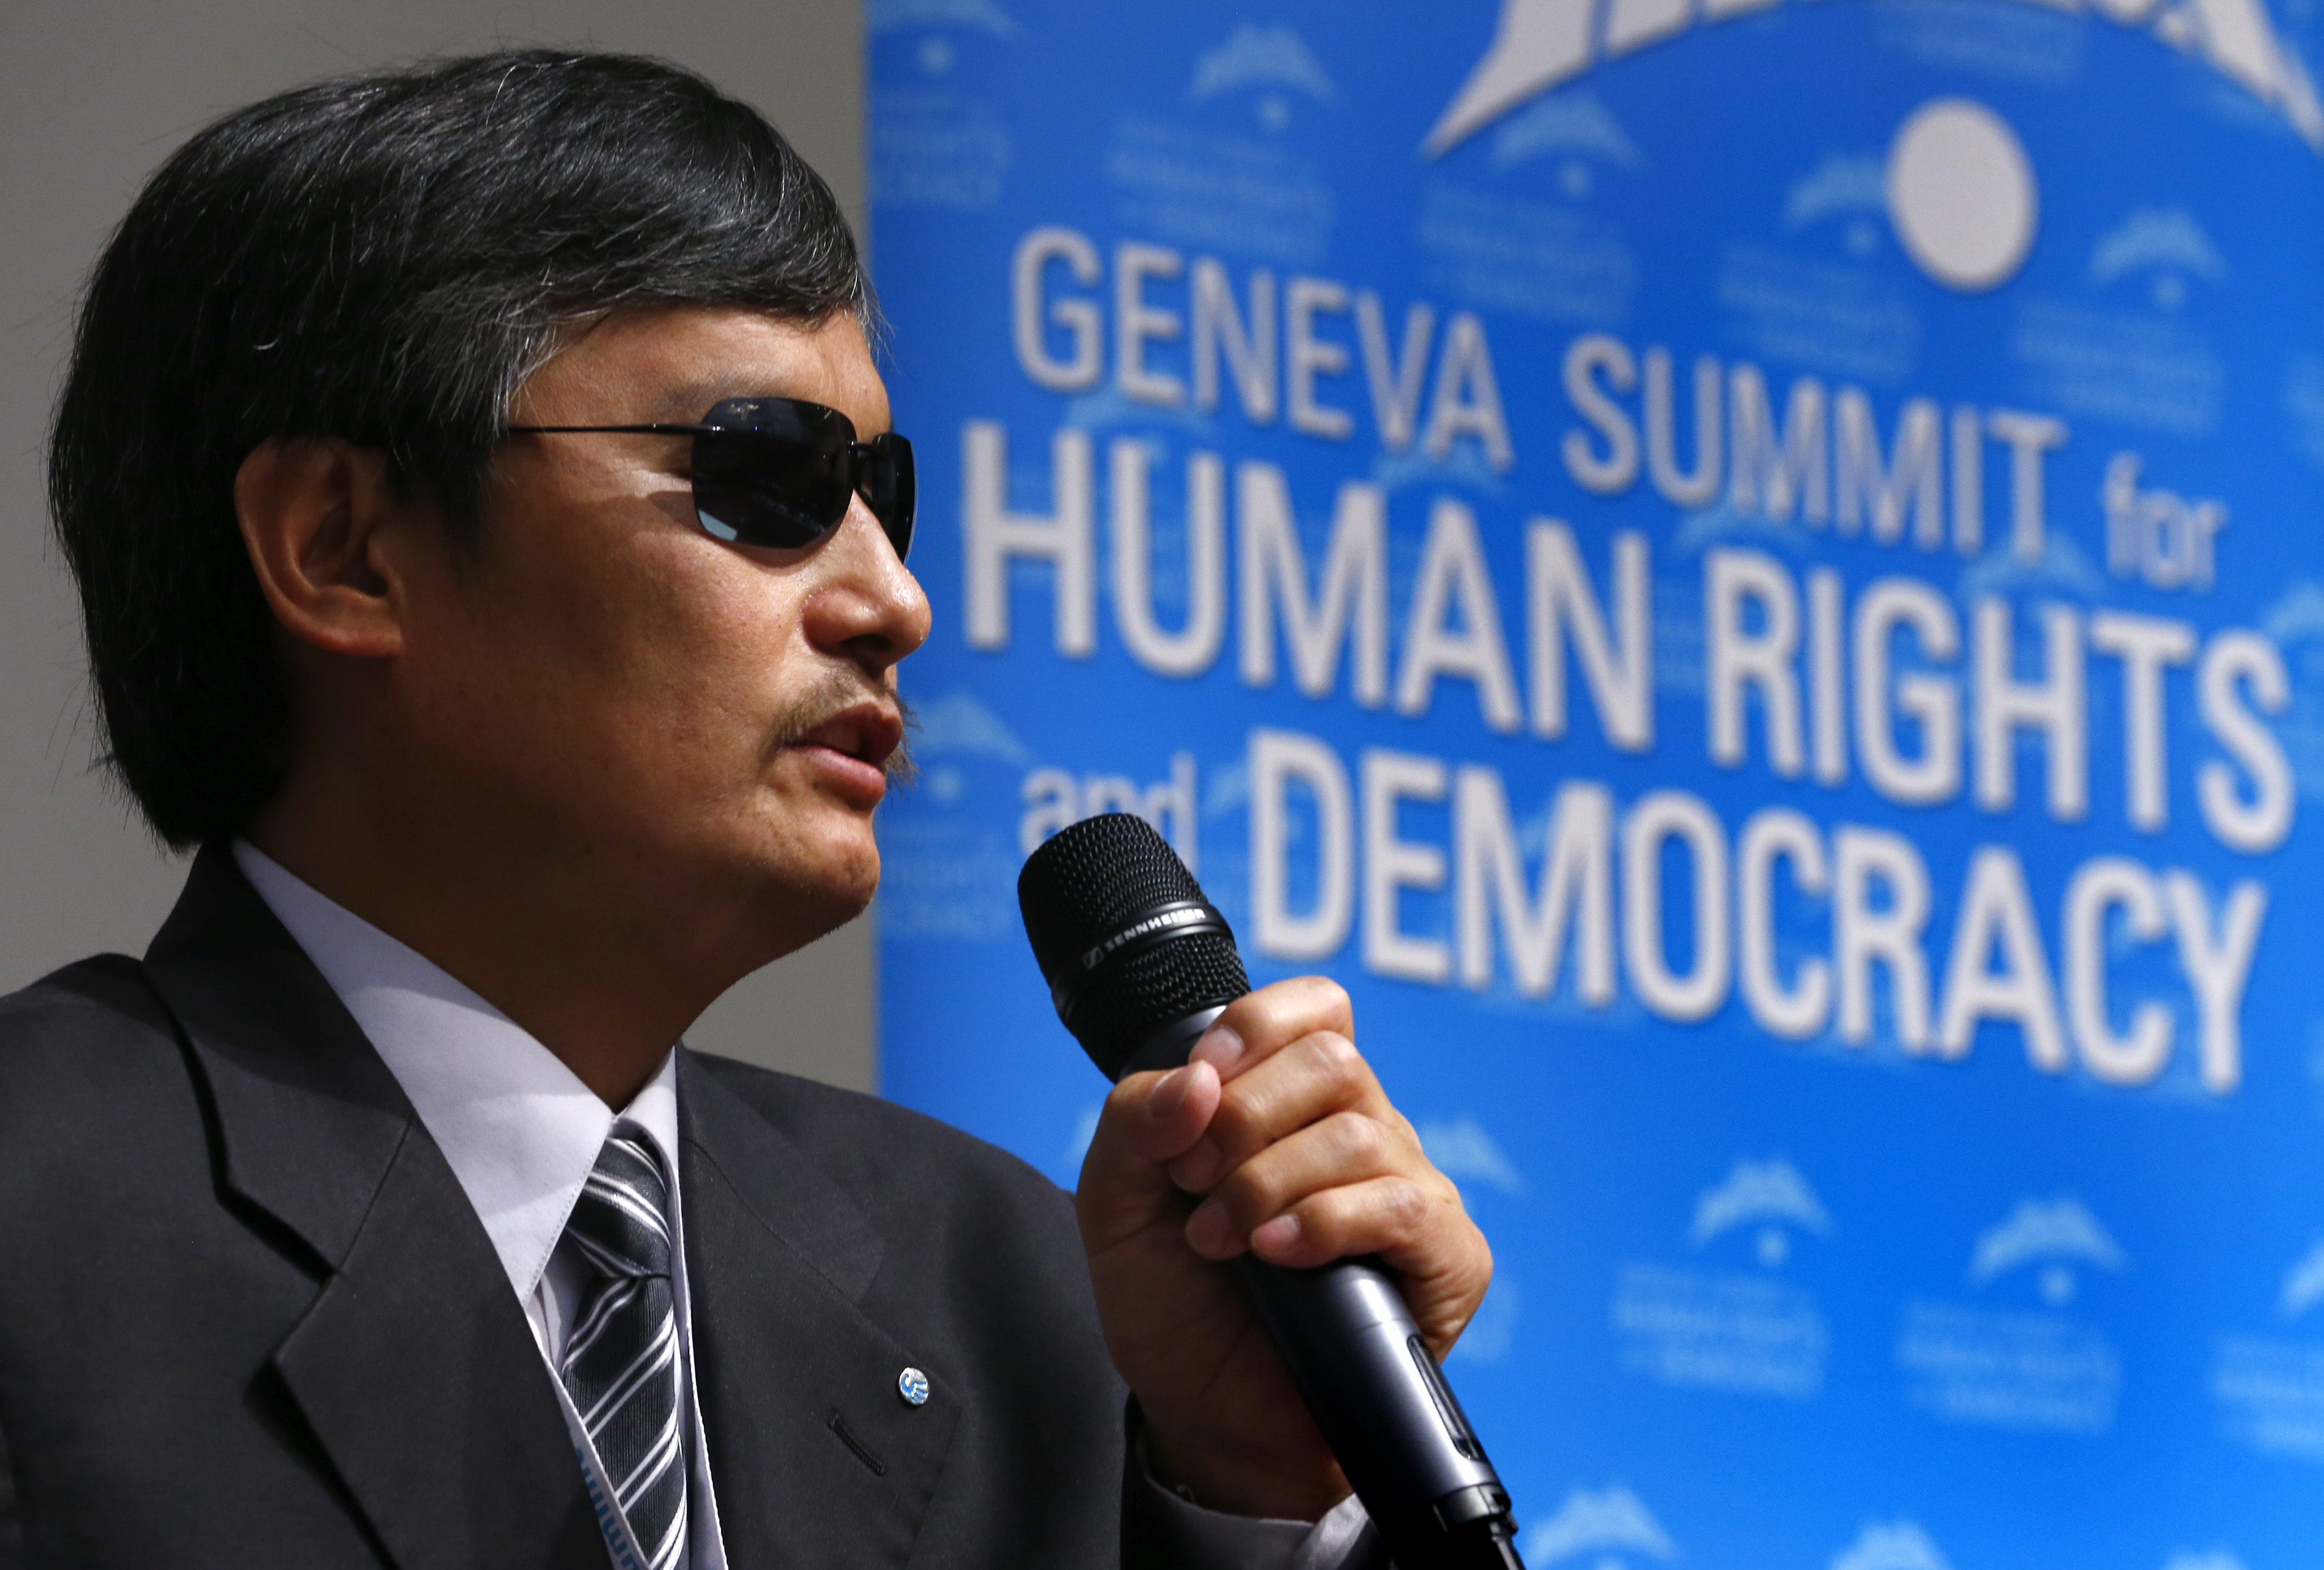 Blind Chinese dissident Chen Guangcheng addresses the sixth Geneva Summit for Human Rights and Democracy after receiving its first Courage Award, in Geneva, Feb. 25, 2014.